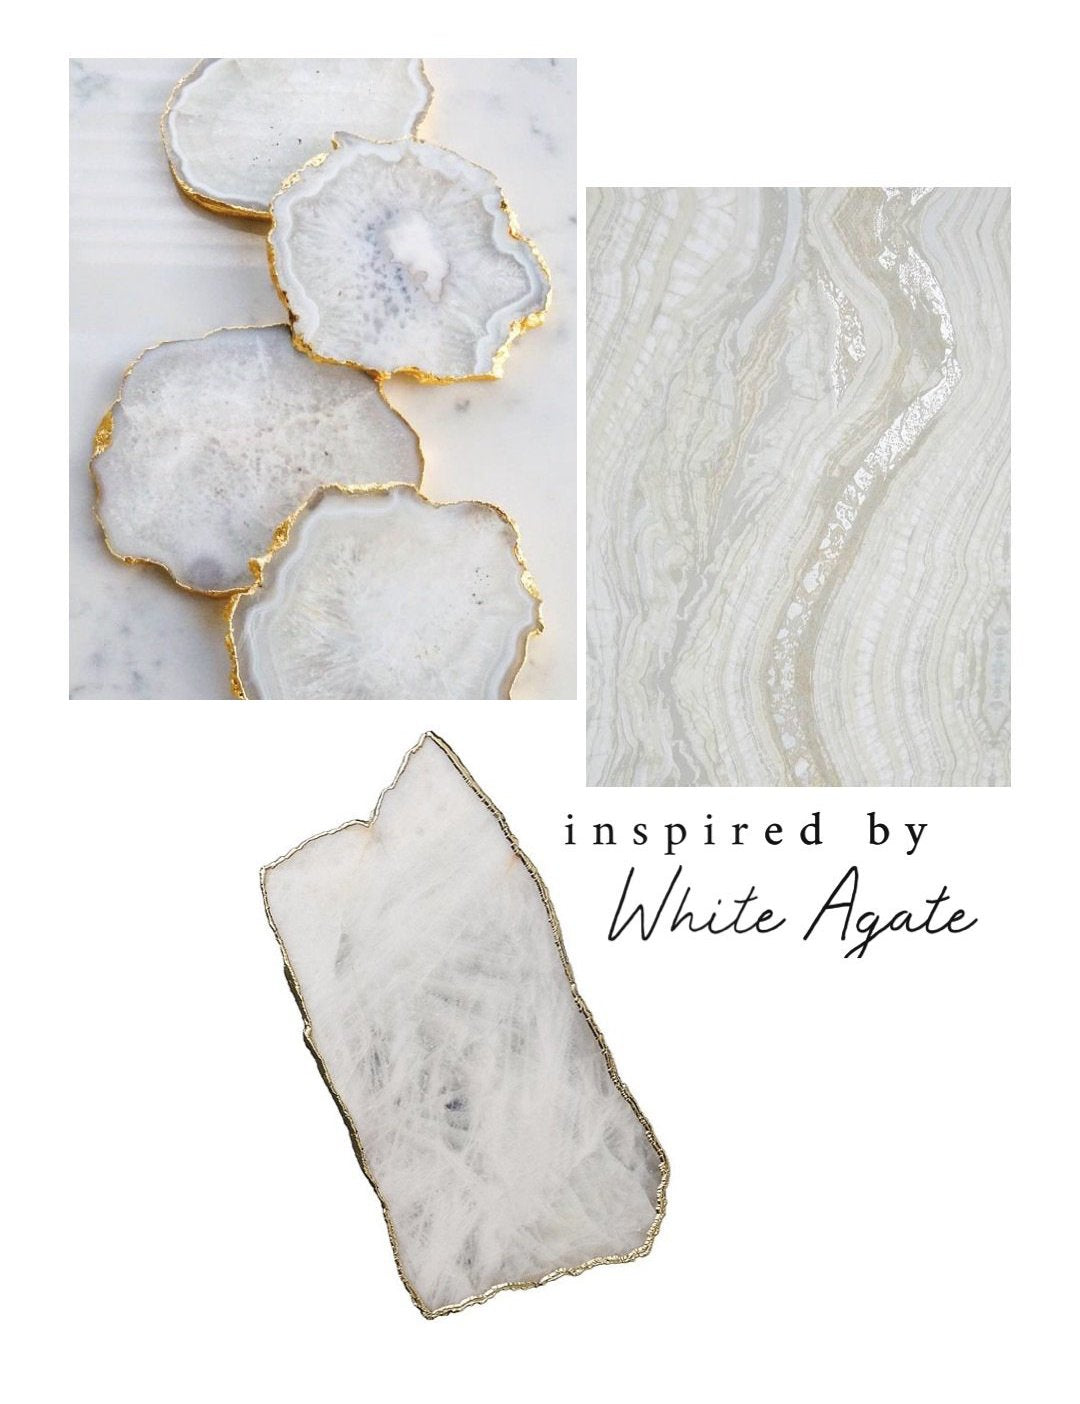 One-of-a-kind Crystal Point Essential Oil Holder • inspired by White Agate (008) - Lava Essential Oils